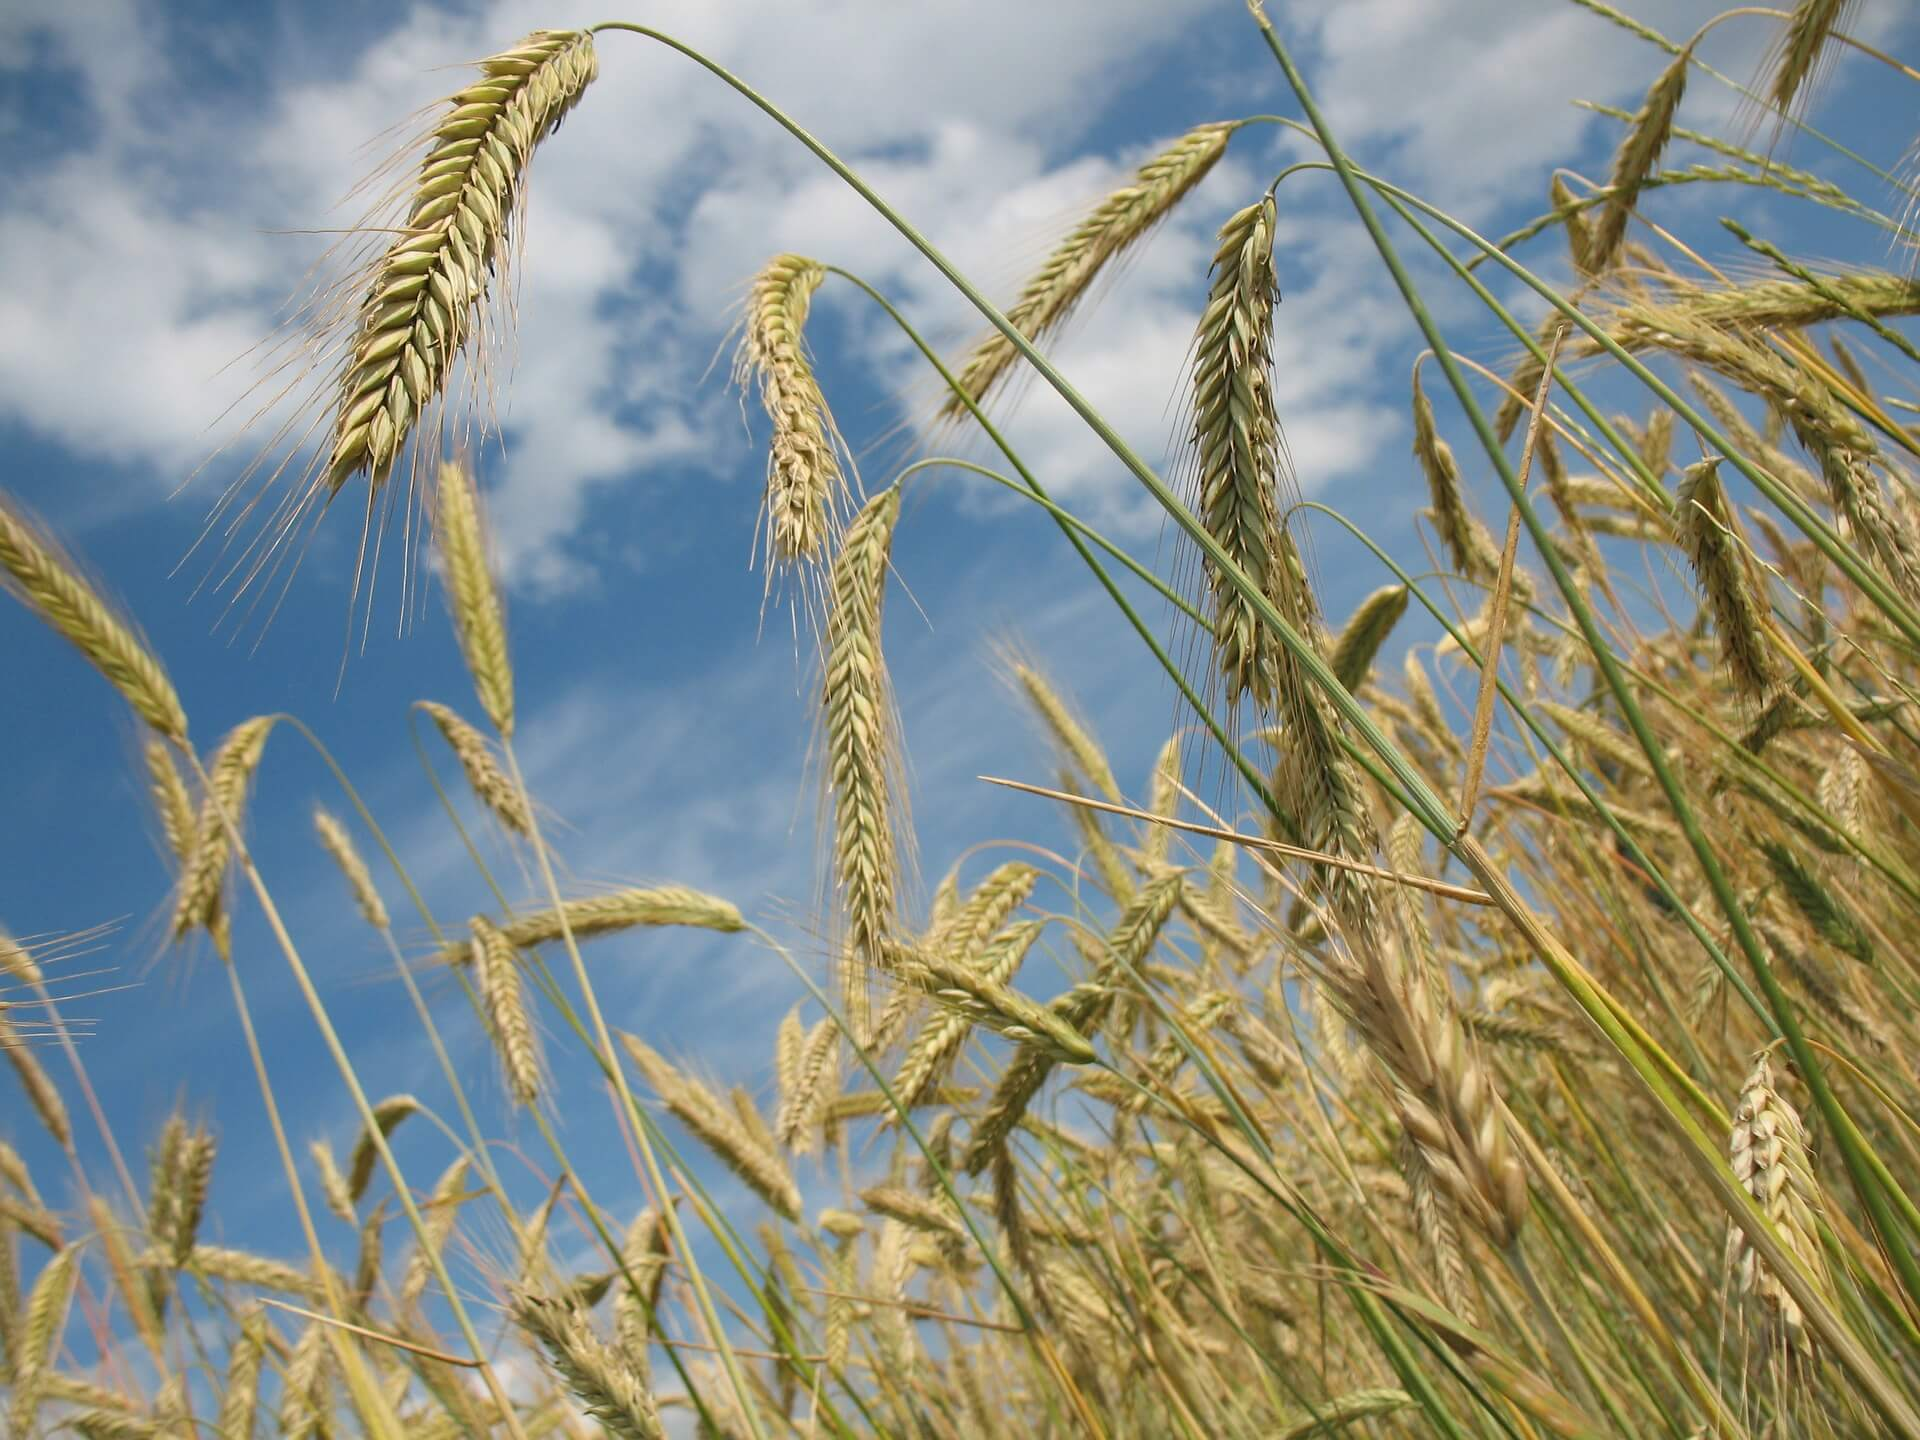 Which Grain Deserves A Spot In Your Survival Stockpile?